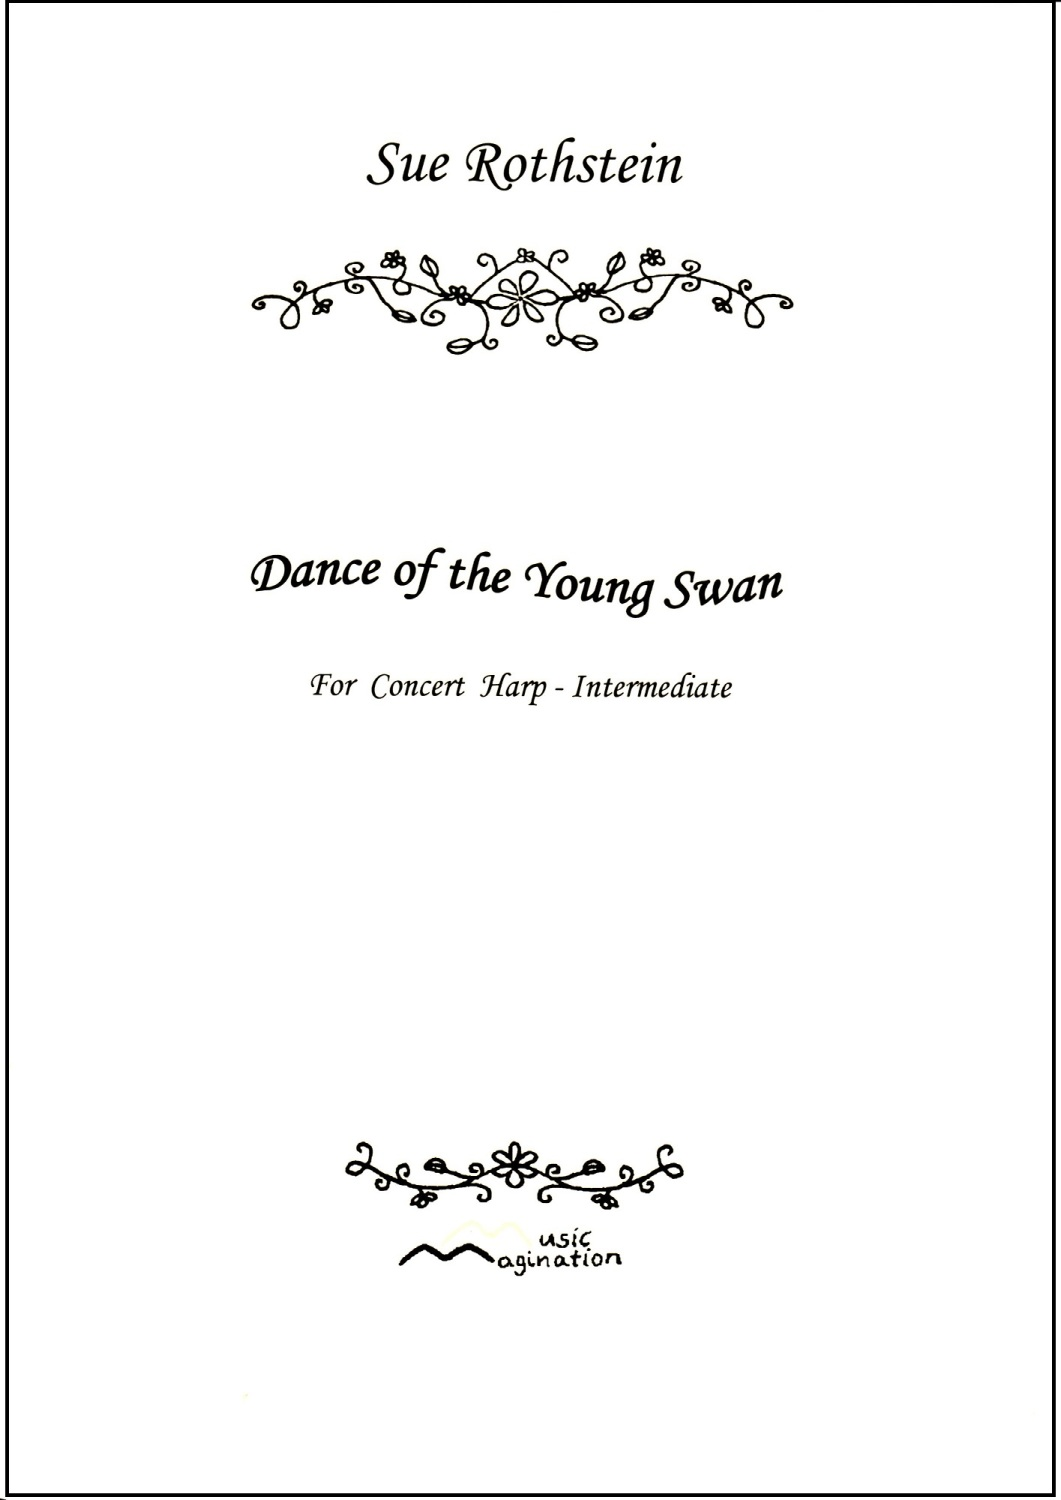 Dance of the Young Swan - Sue Rothstein